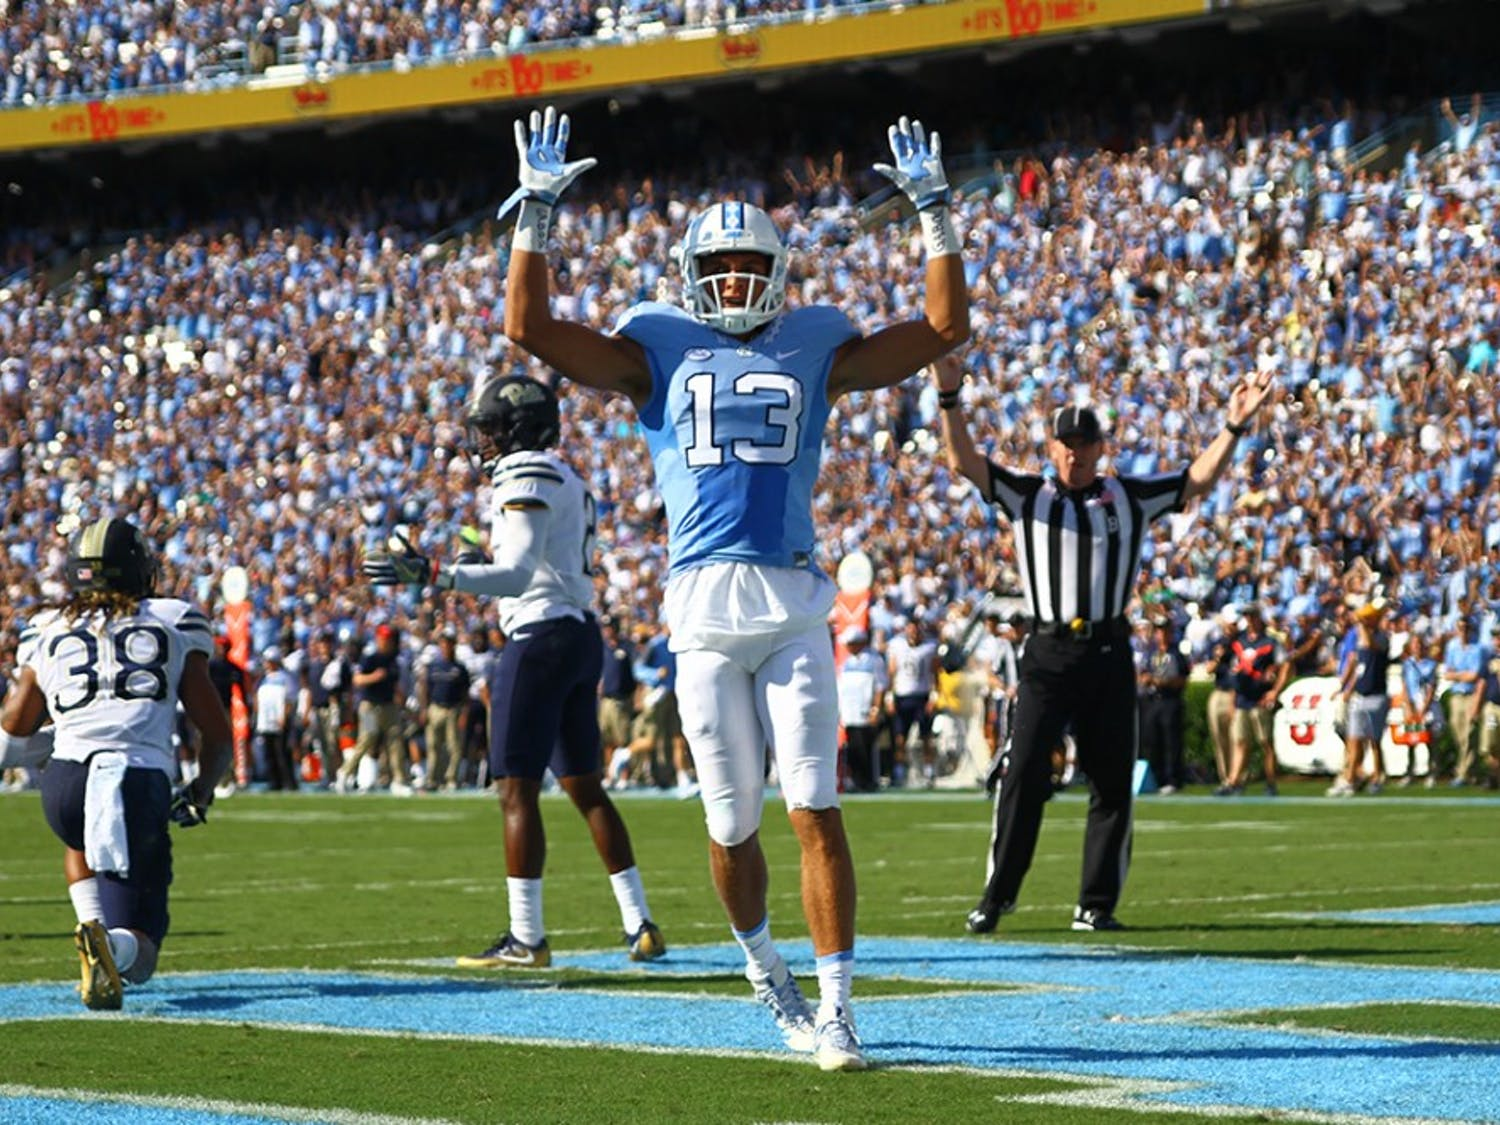 UNC wide receiver Mack Hollins (13) celebrates after scoring a touchdown against Pitt. The Tar Heels defeated the Panthers 37-36 on Saturday.